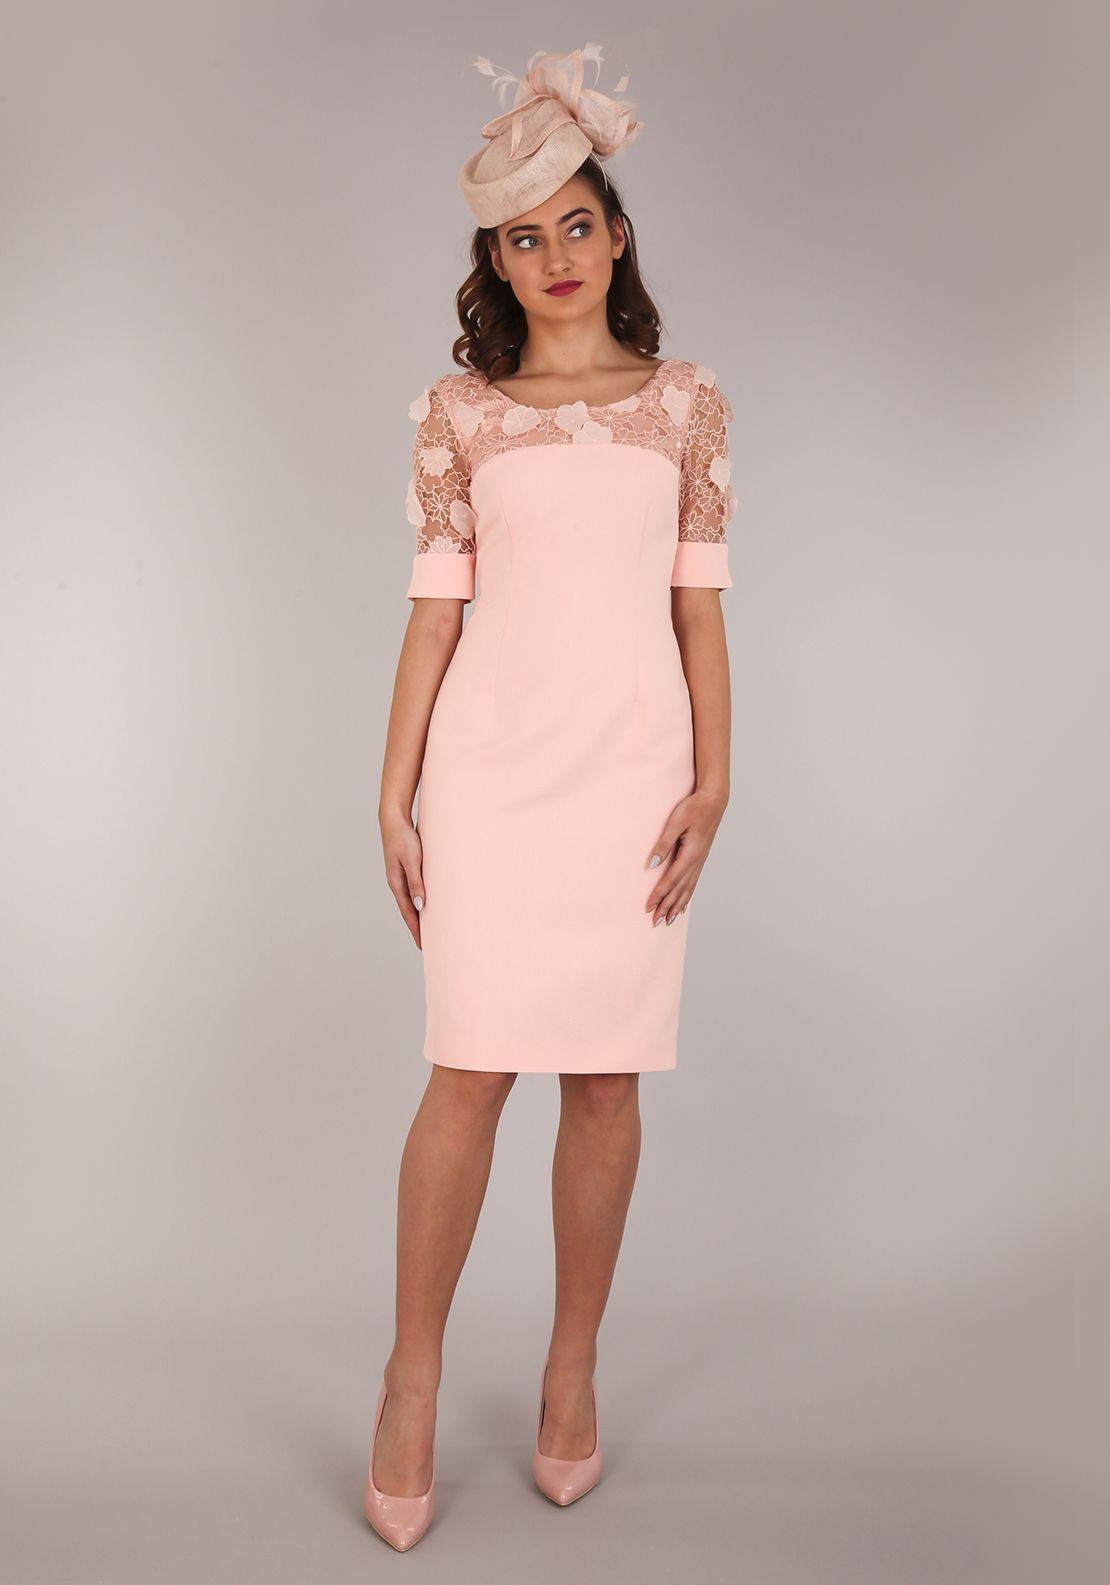 Aideen Bodkin Guava Pencil Dress, Apricot Pink (Mit Bildern